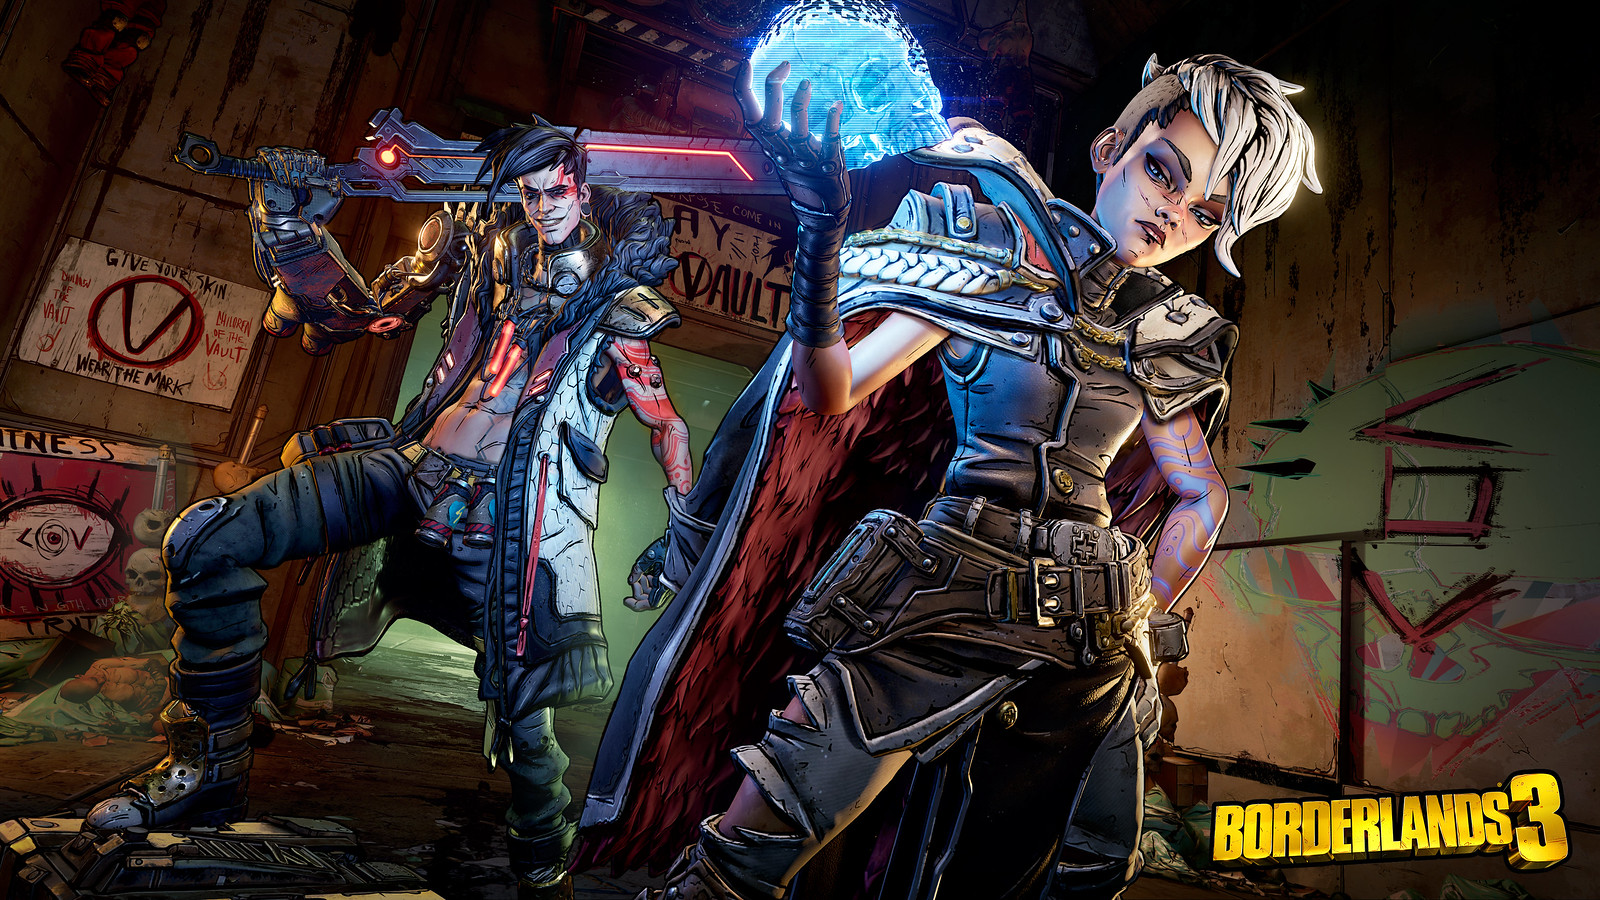 Borderlands 3 Hits PS4 September 13, Watch the New Gameplay